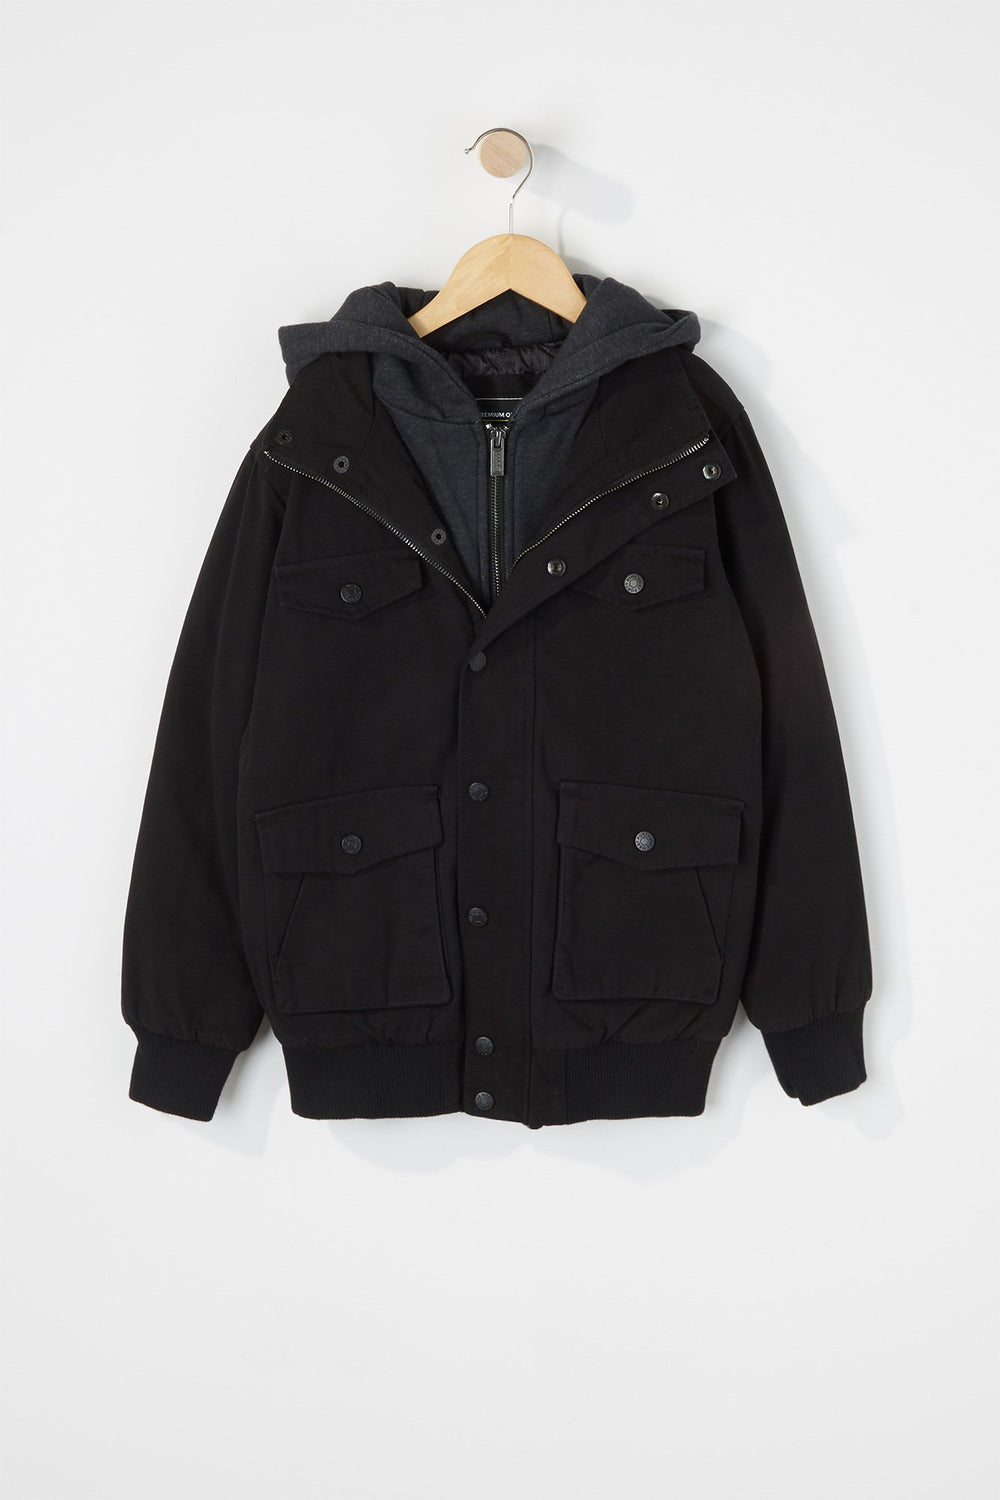 West49 Boys Hooded Jacket Black